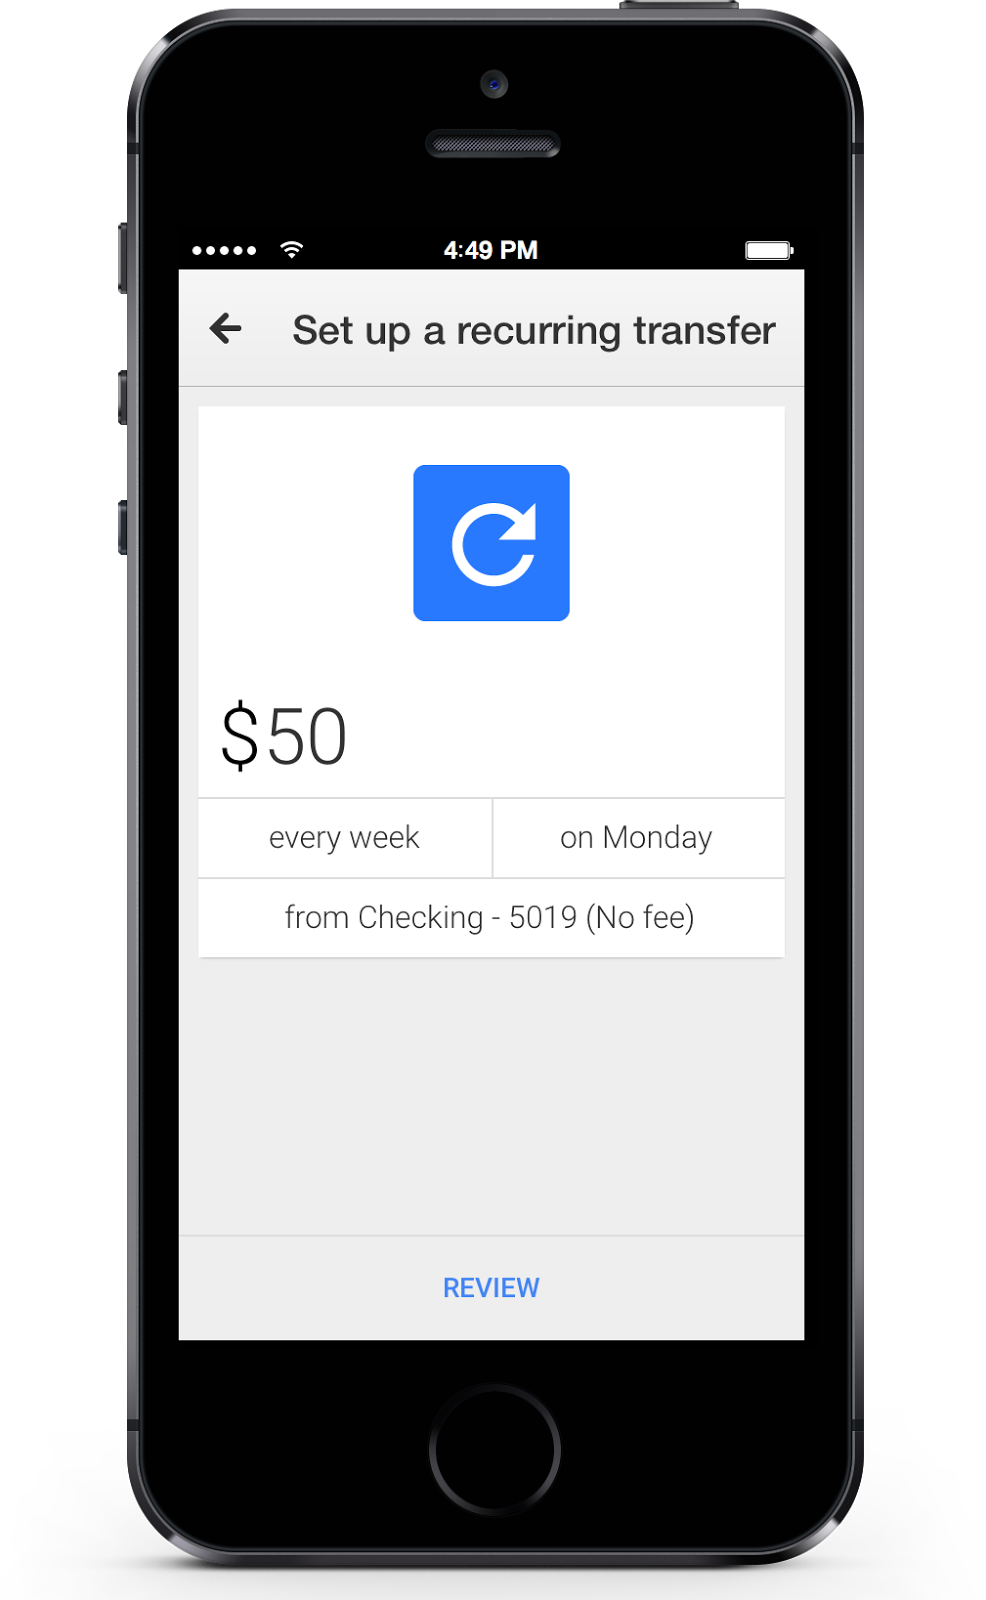 Amid Apple Pay vs. CurrentC 'skirmish,' Google Wallet gets updated with new features